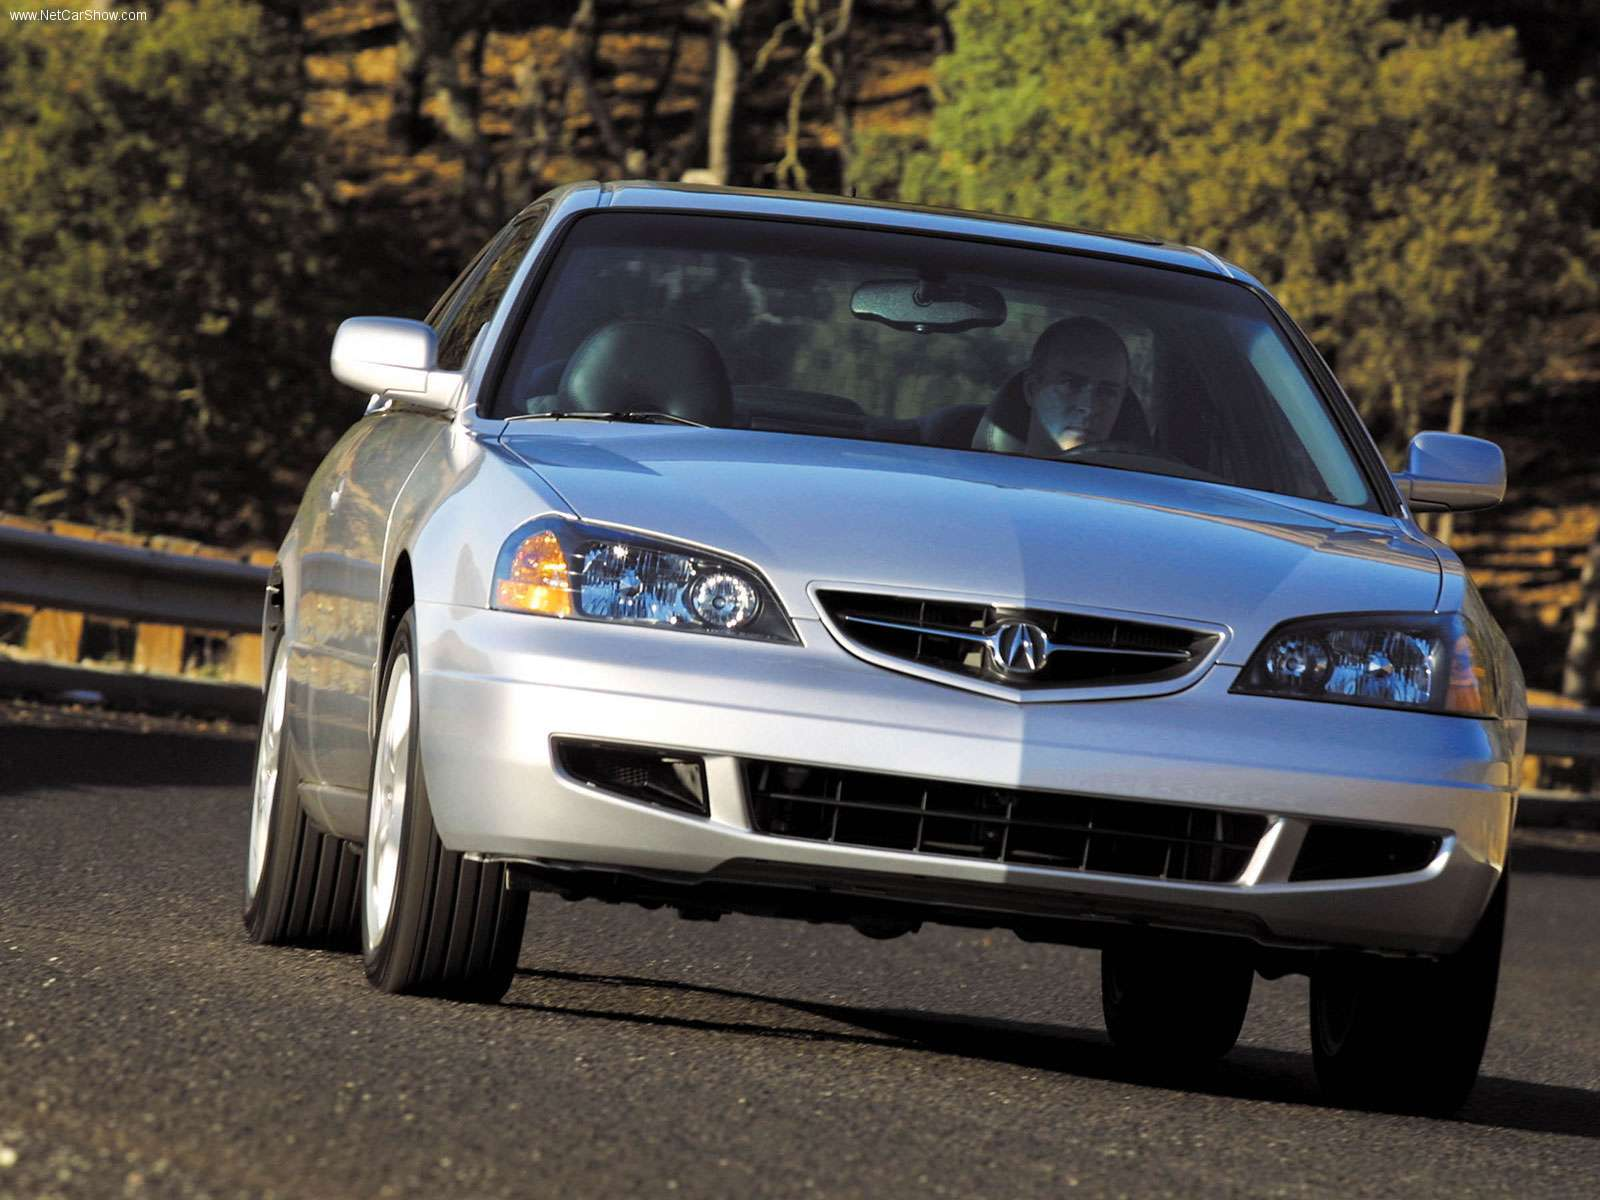 Acura CL photo 61745